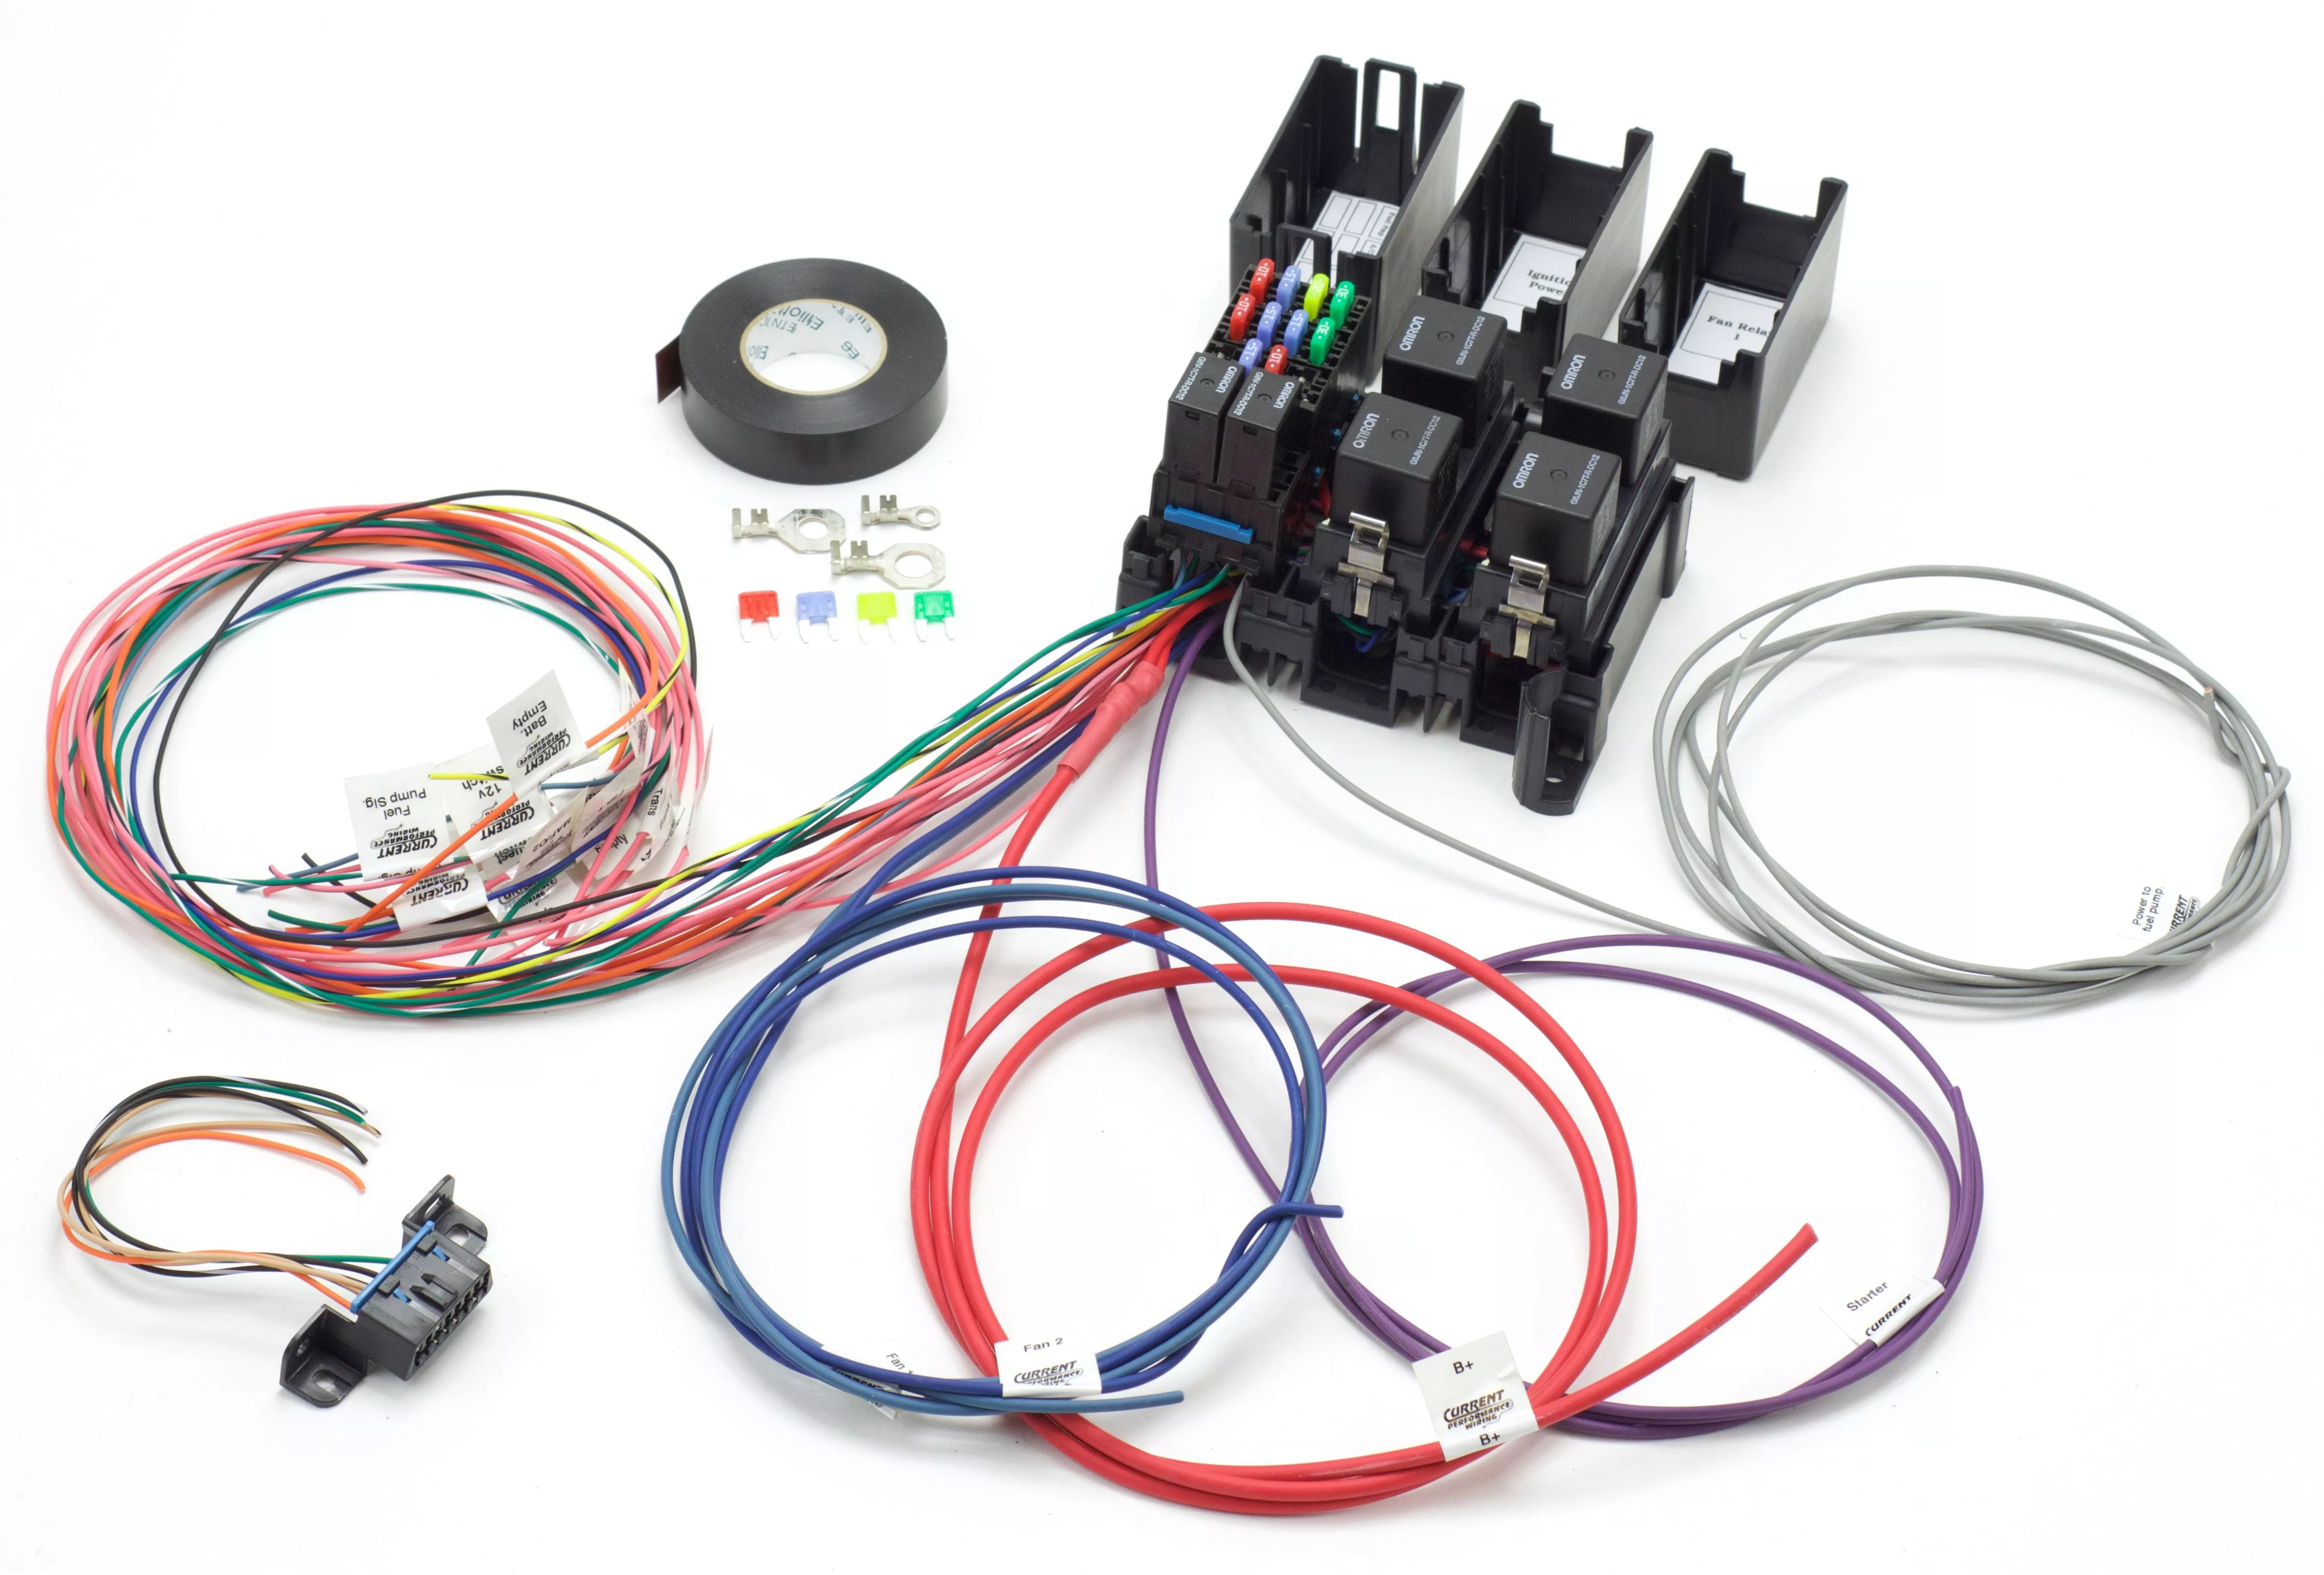 Identifying Or Locating The Trigger Wire